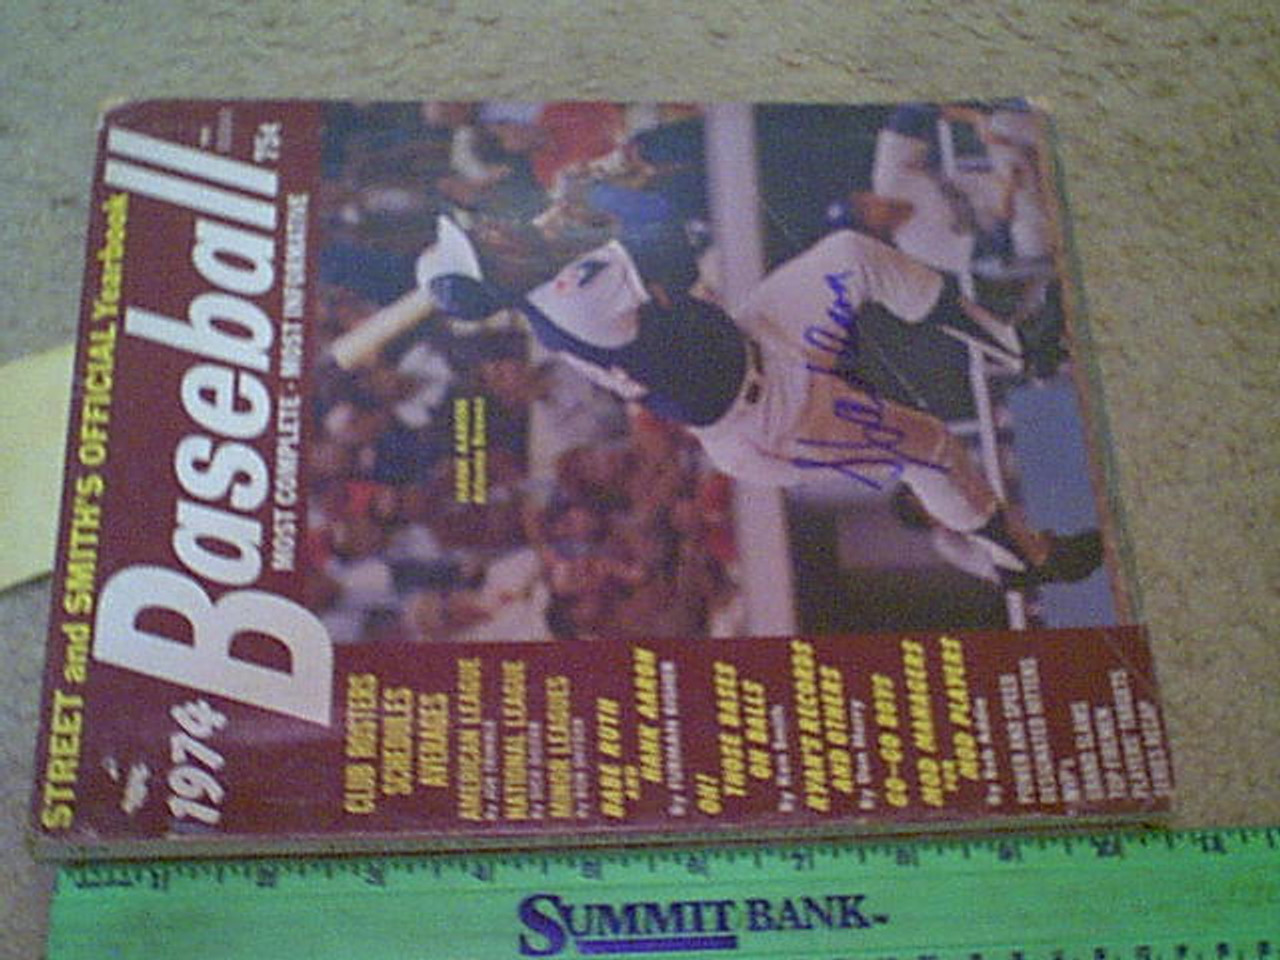 Aaron, Hank 1974 Baseball Magazine Yearbook Signed Autograph Color Cover Photo